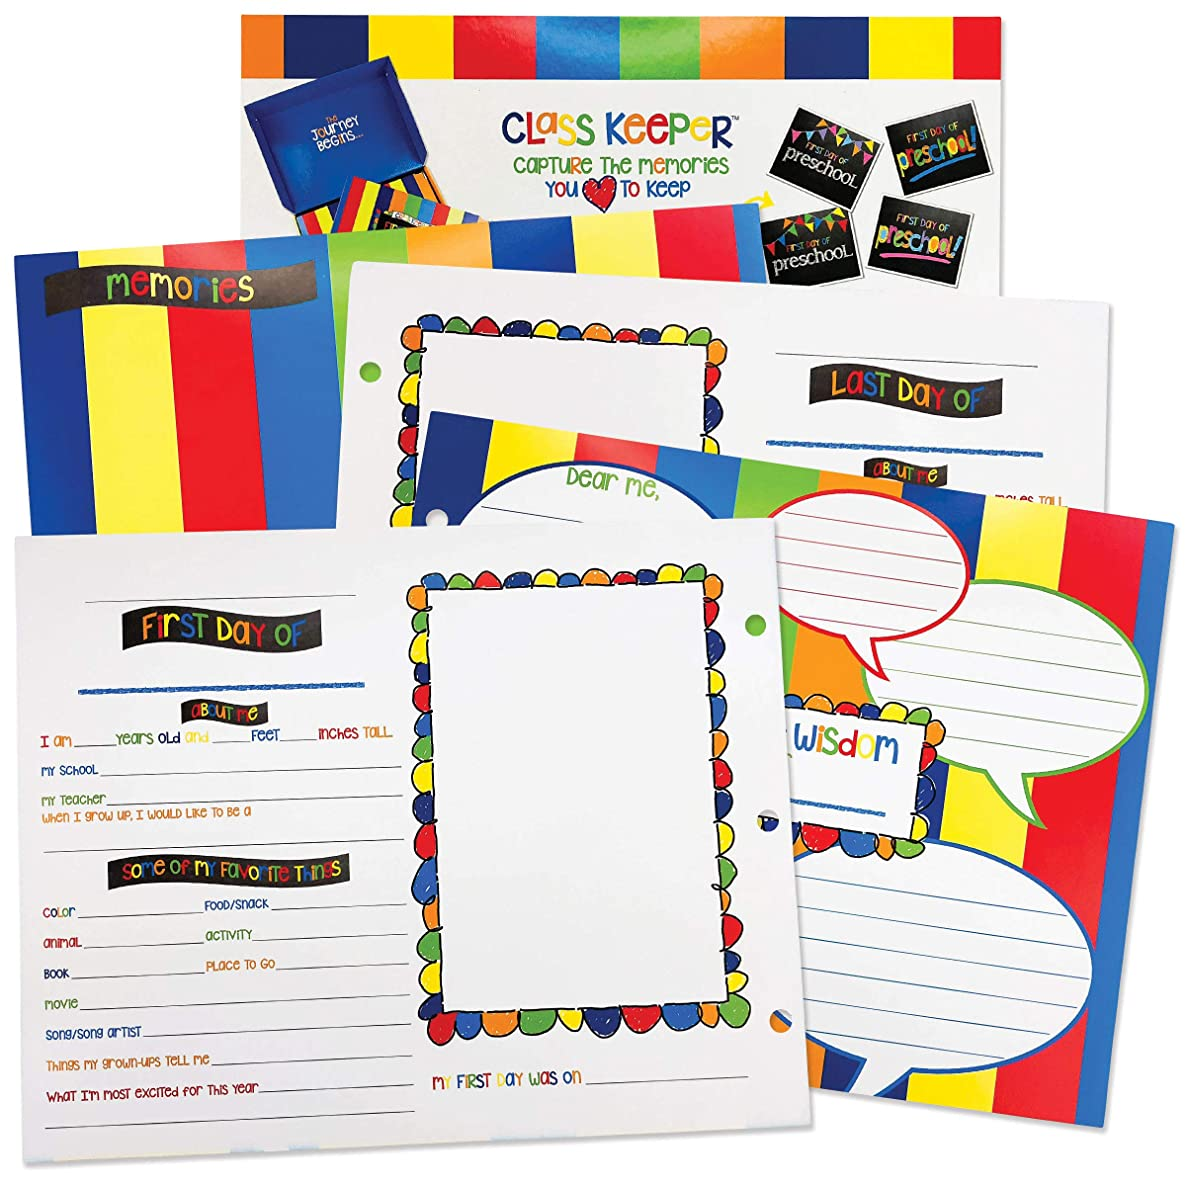 School Memory Scrapbook Refill Extra Pages Kits (2 Grades) for First & Last Day of School for Class Keeper Memory Keepsake Book for Girls and Boys